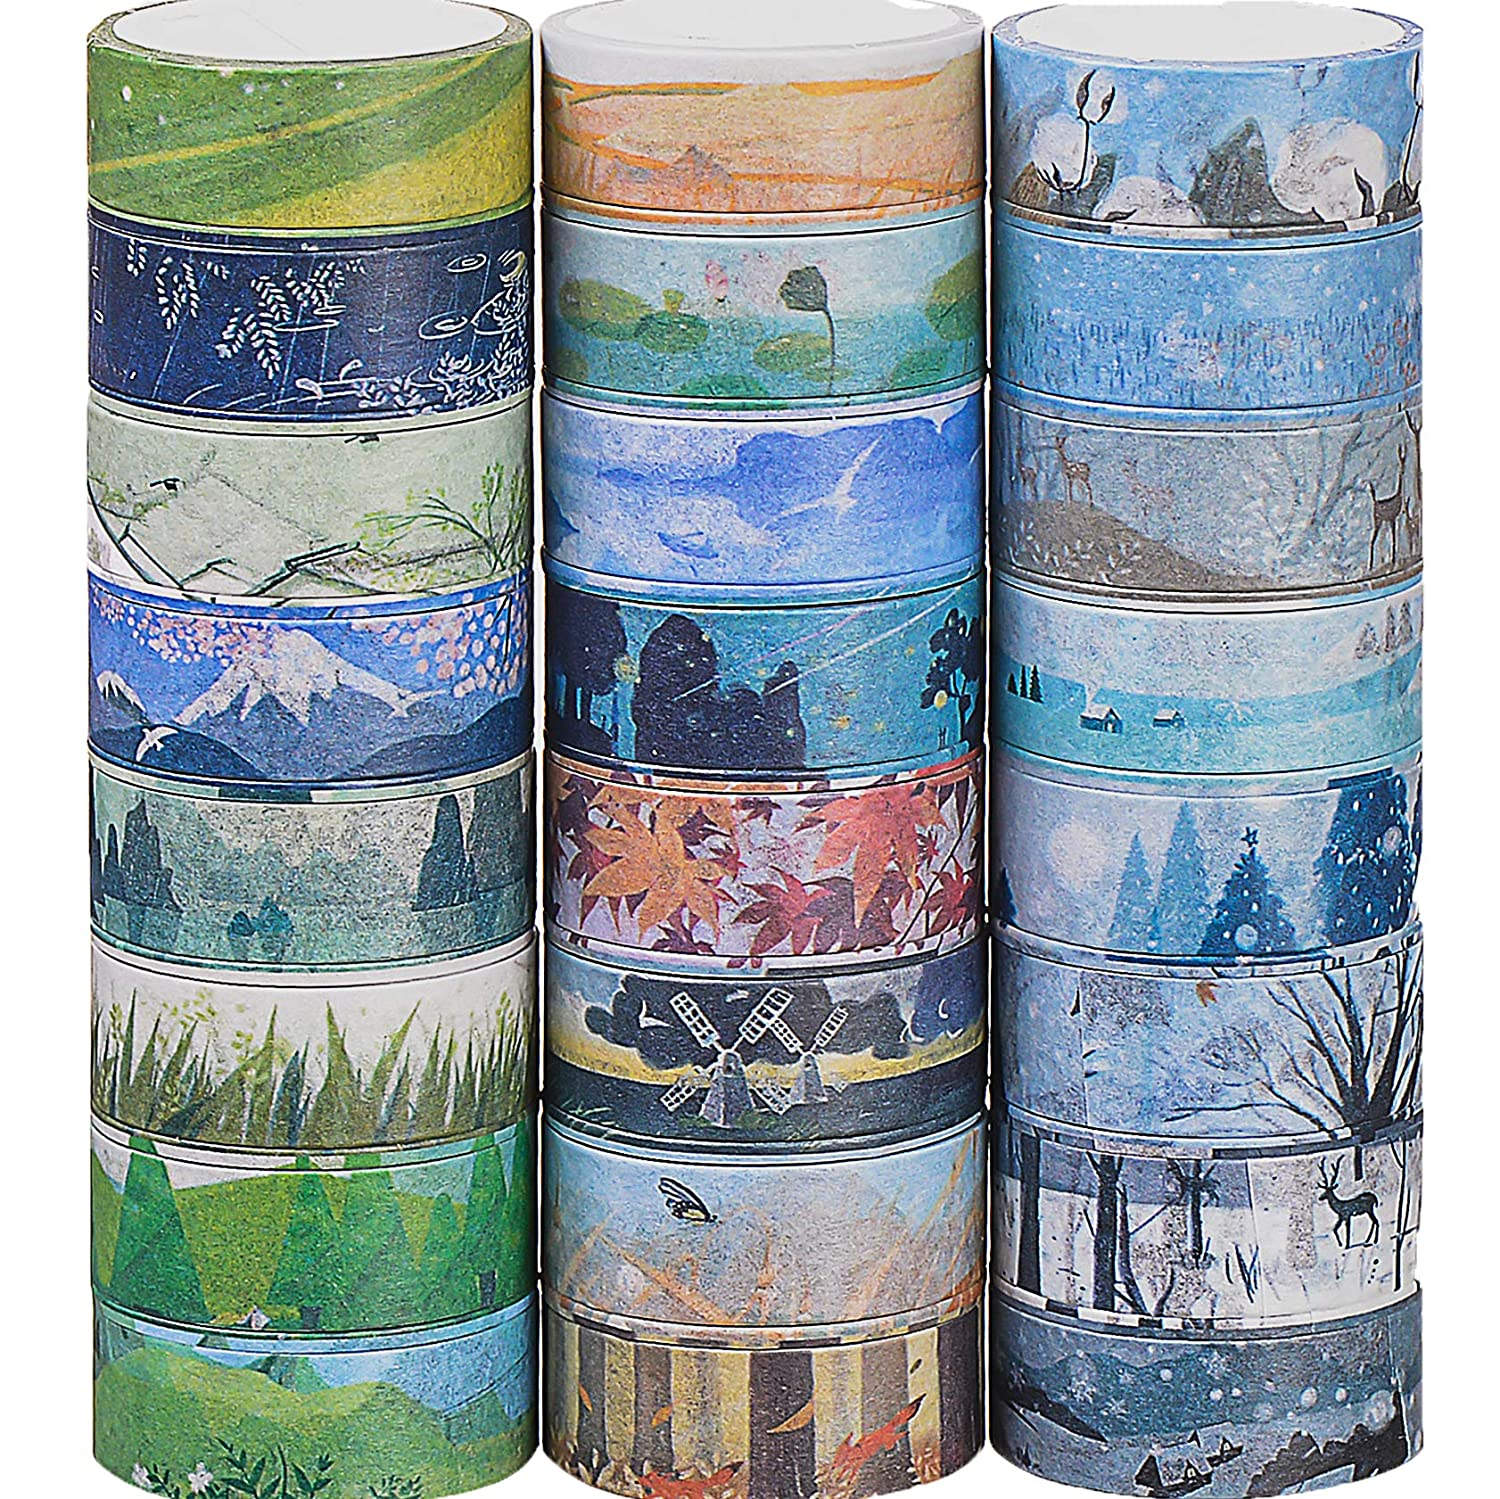 24 Rolls Decorative Washi Tape,Different Styles Masking Adhesive Tape for Scrapbooking IEVAMALL EUR